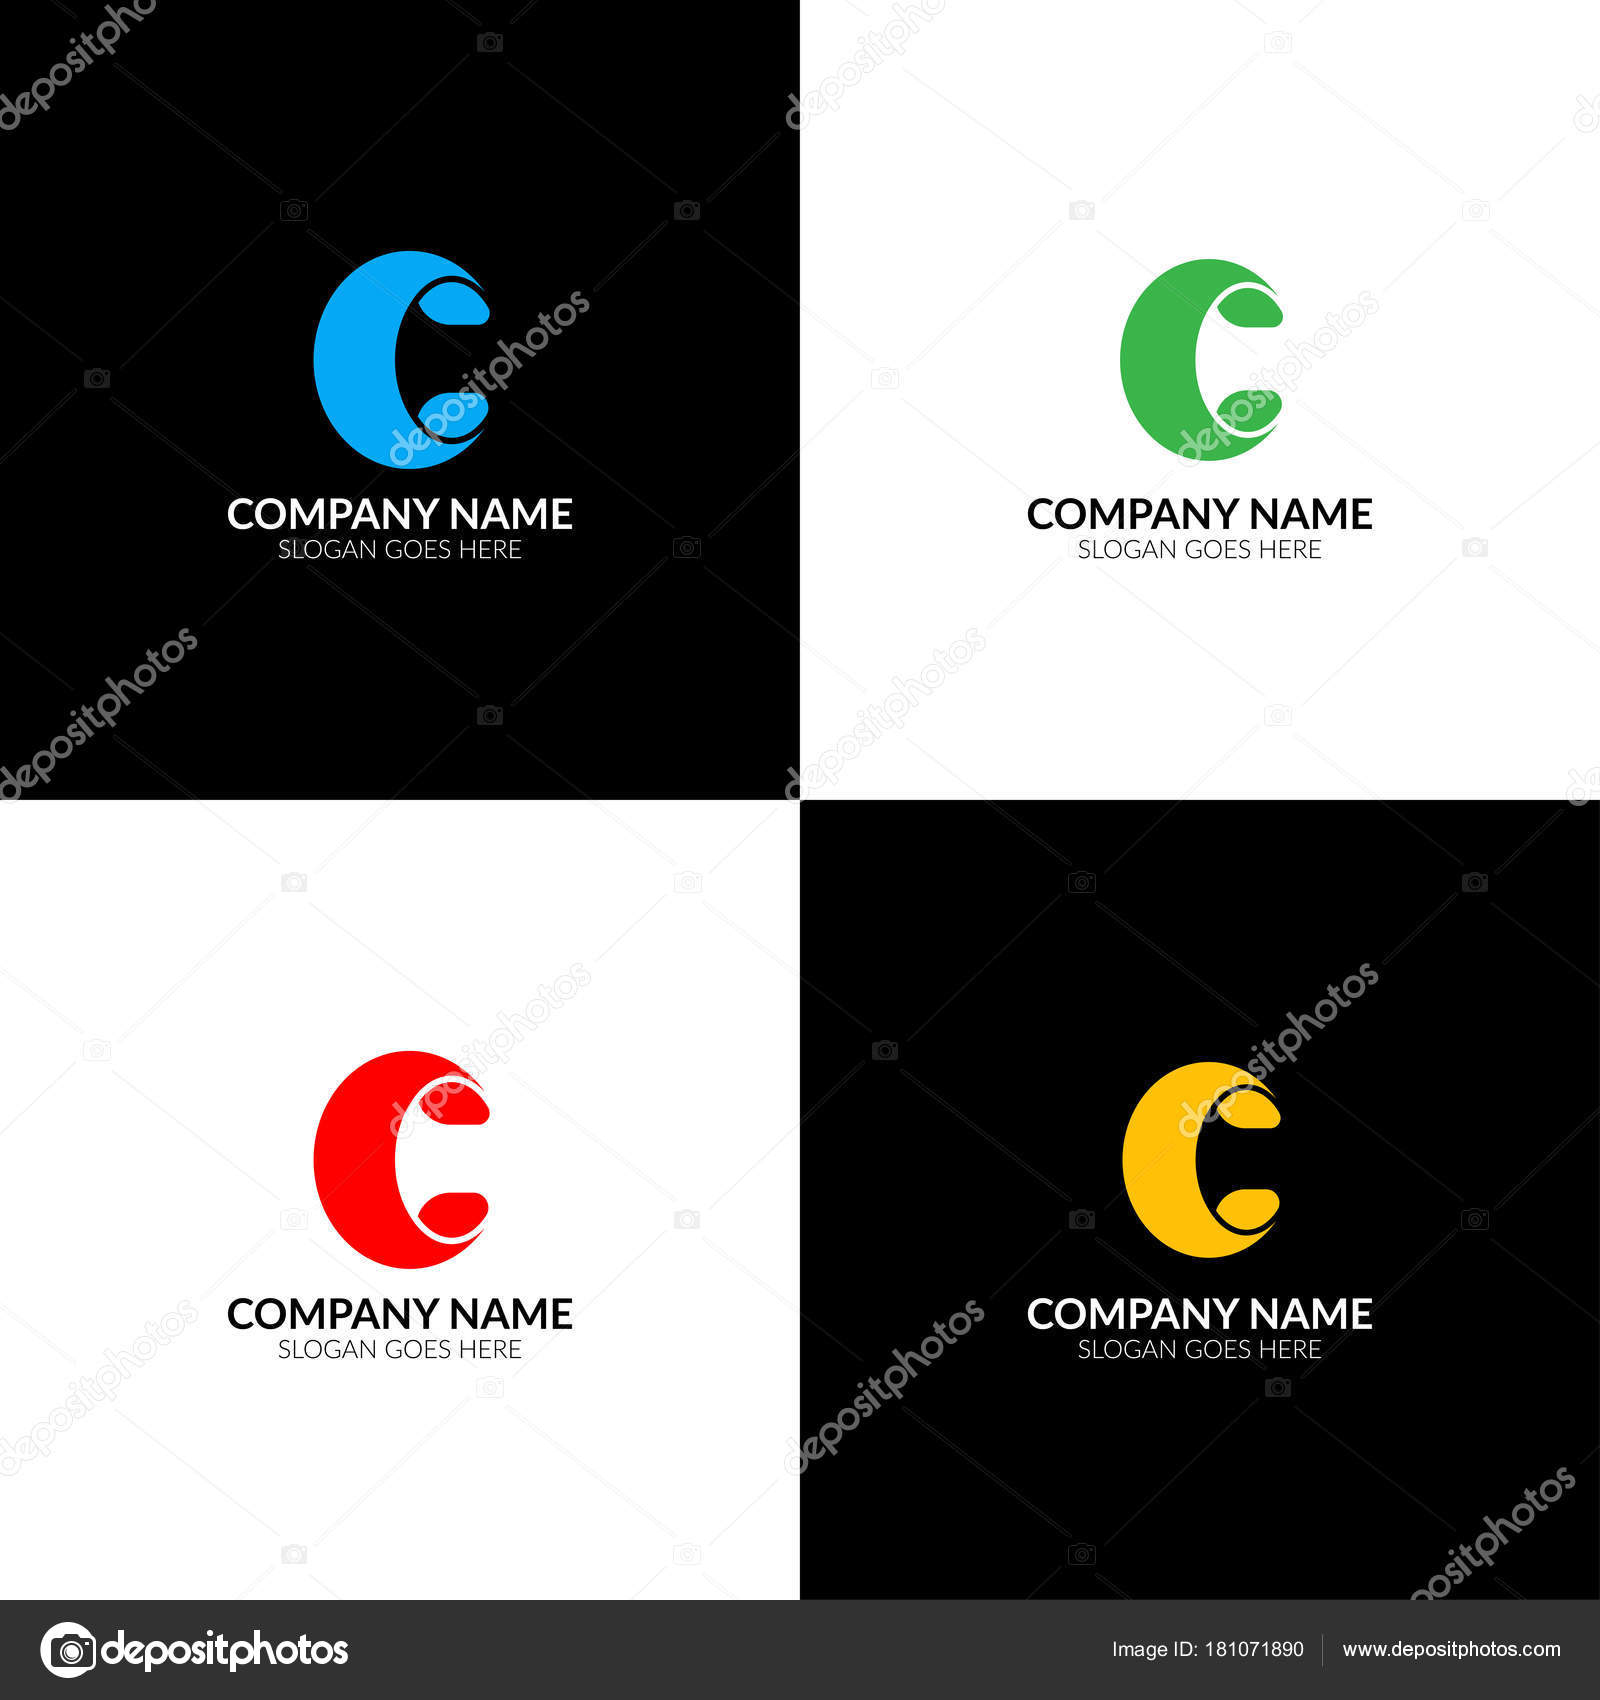 letter c logo, icon flat and vector design template. the bold letter